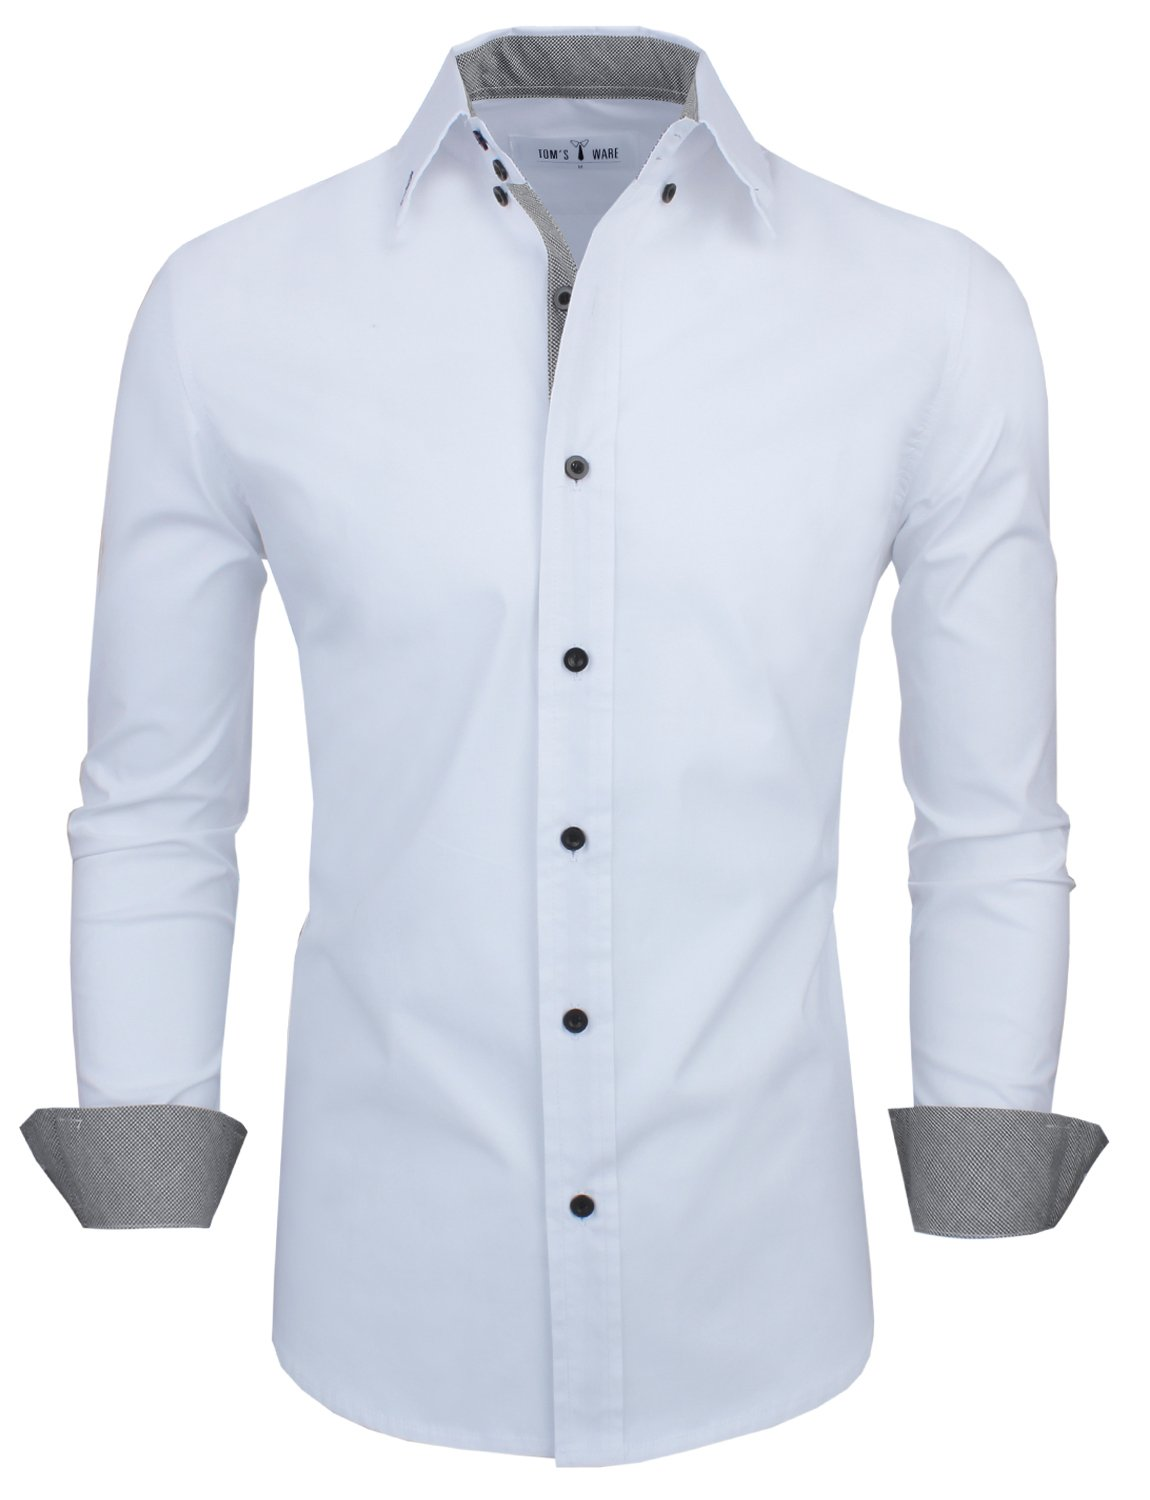 Tom's Ware Mens Classic Slim Fit Contrast Inner Long Sleeve Dress Shirts TWNMS314-1-317-WHITE-US L